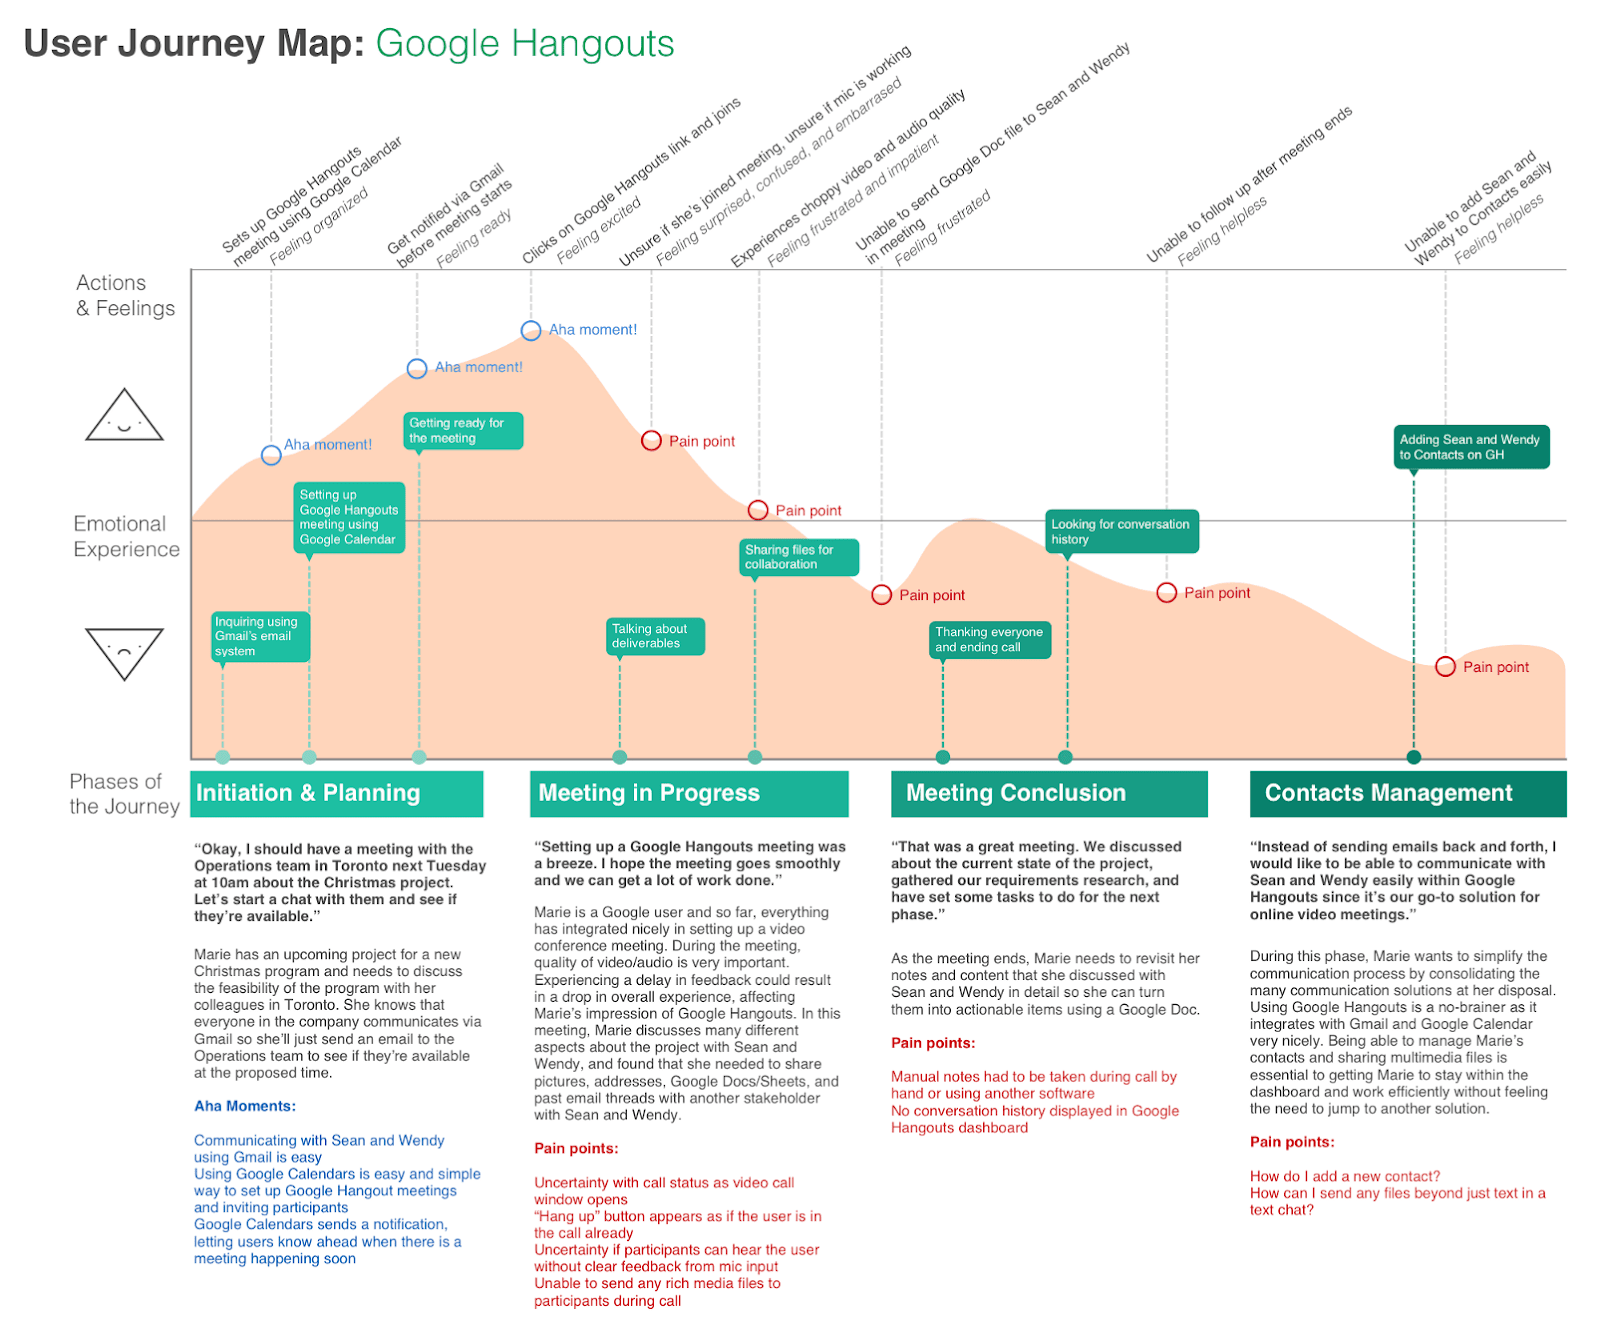 Google Hangouts user journey map showing the relation between customers' actions and feelings, emotional state, and customer jouney phases